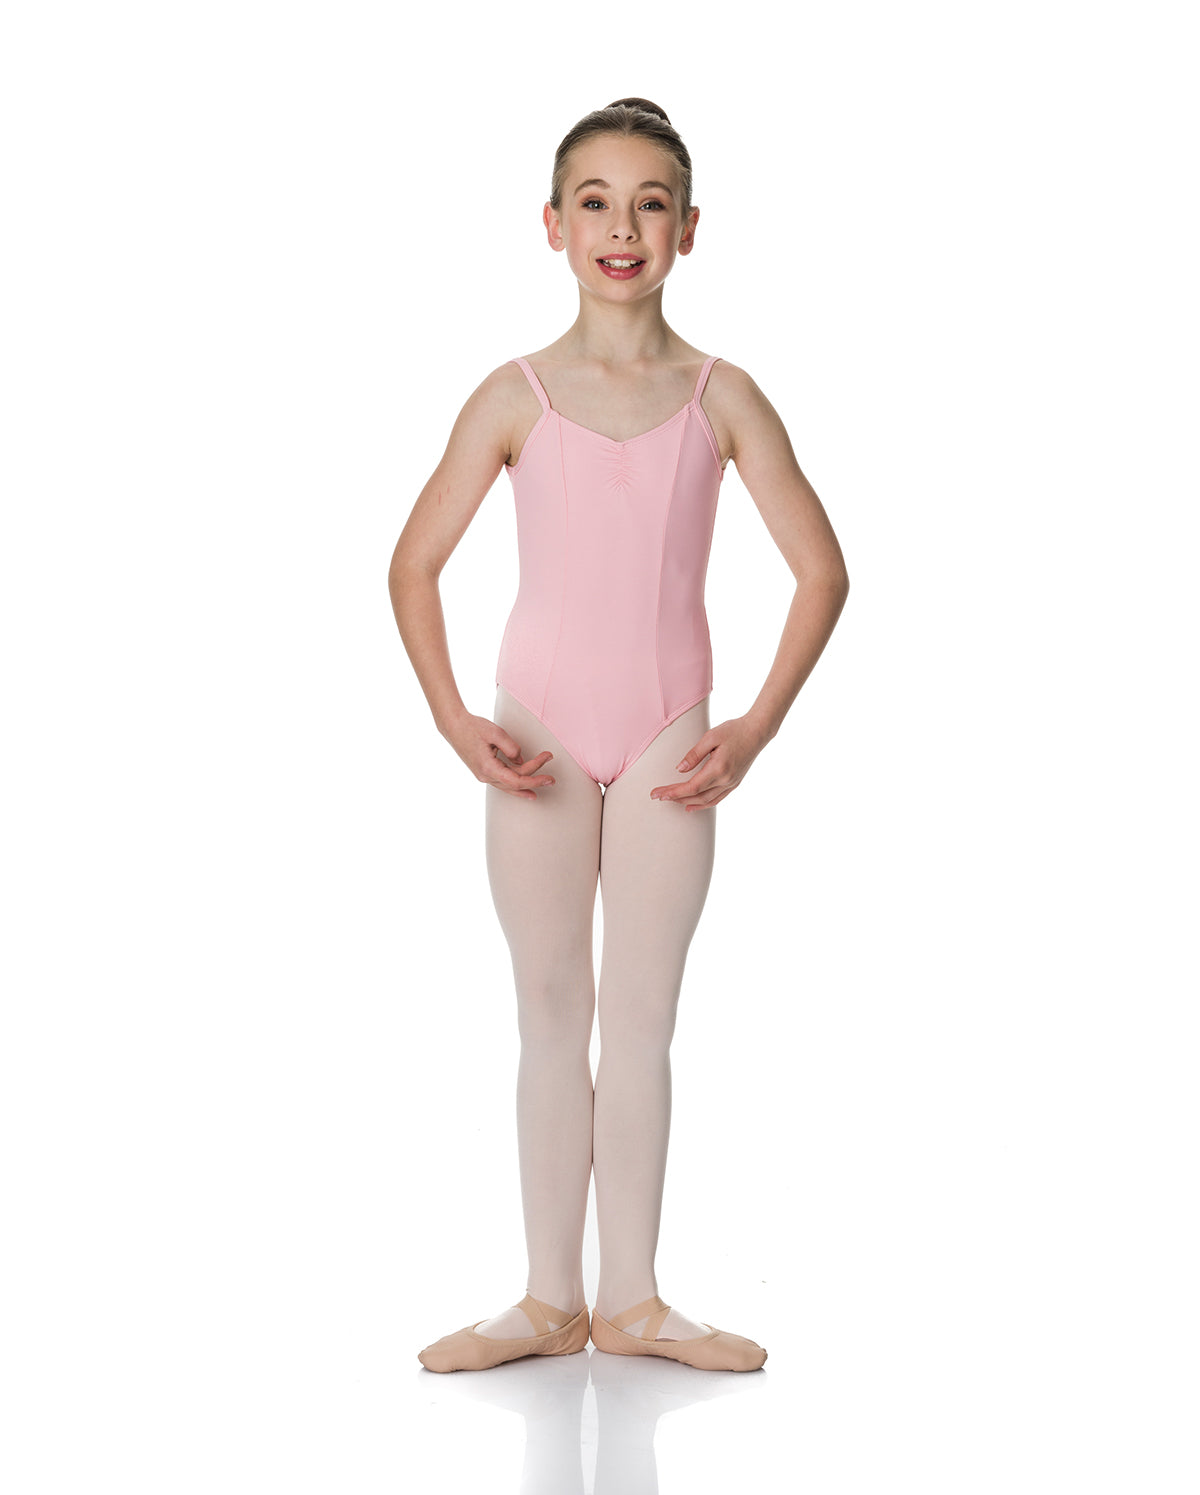 f42af948fafb4 Studio 7, Camisole Leotard, Childs, TCL02